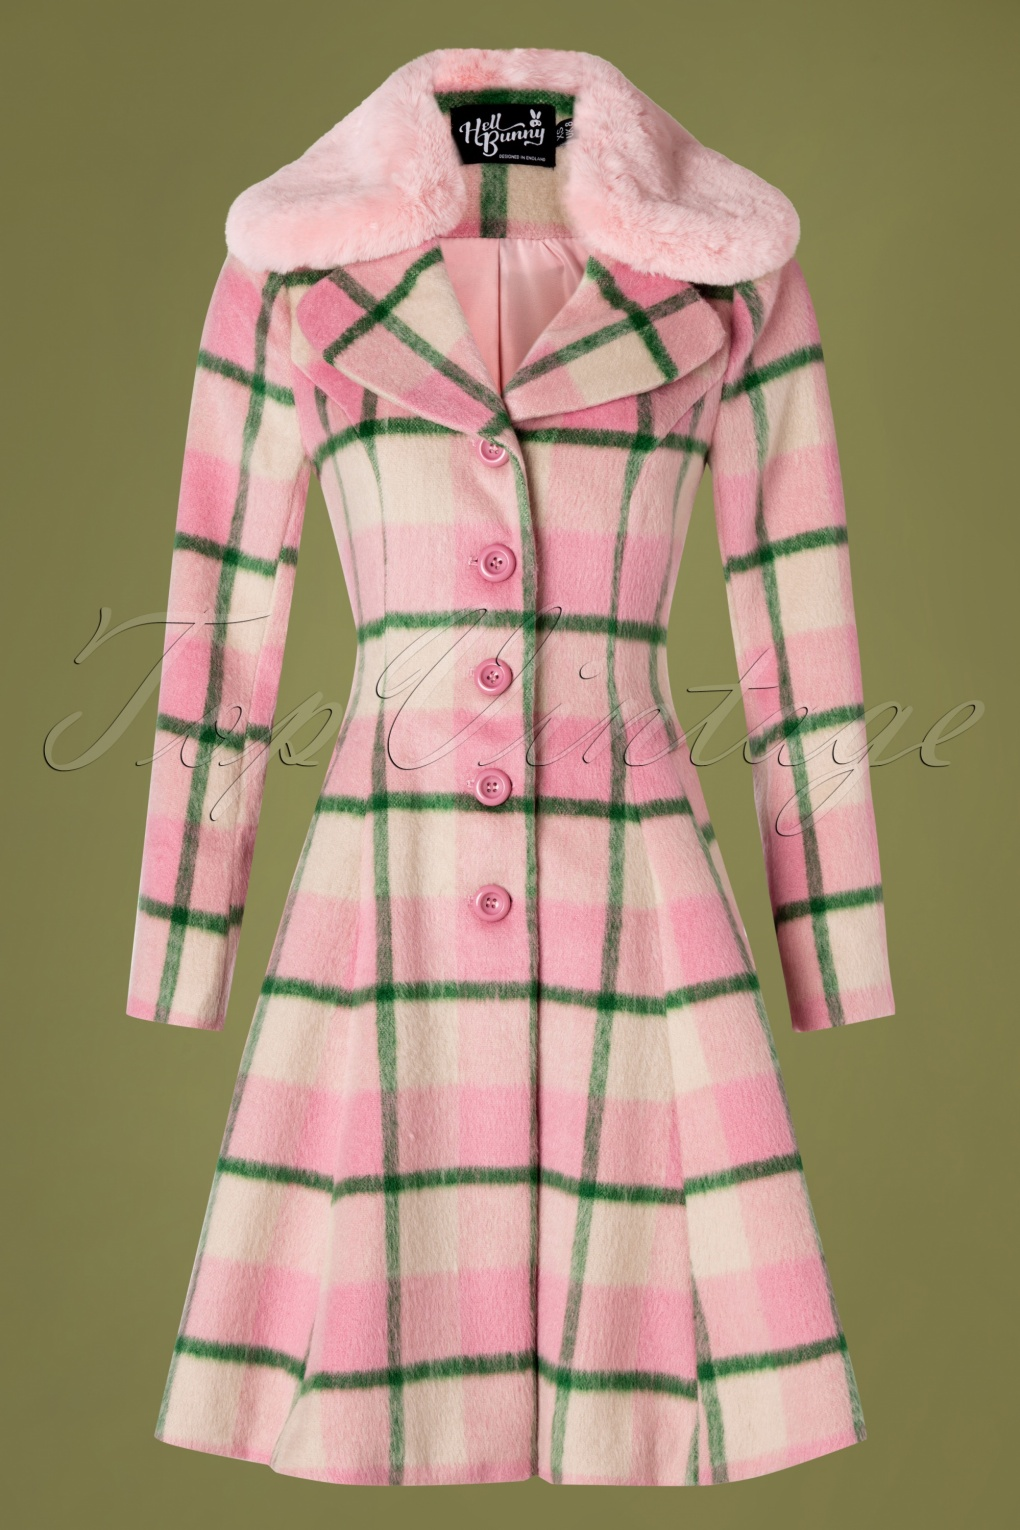 Vintage Coats & Jackets | Retro Coats and Jackets 50s Millicent Swing Coat in Pink £164.19 AT vintagedancer.com